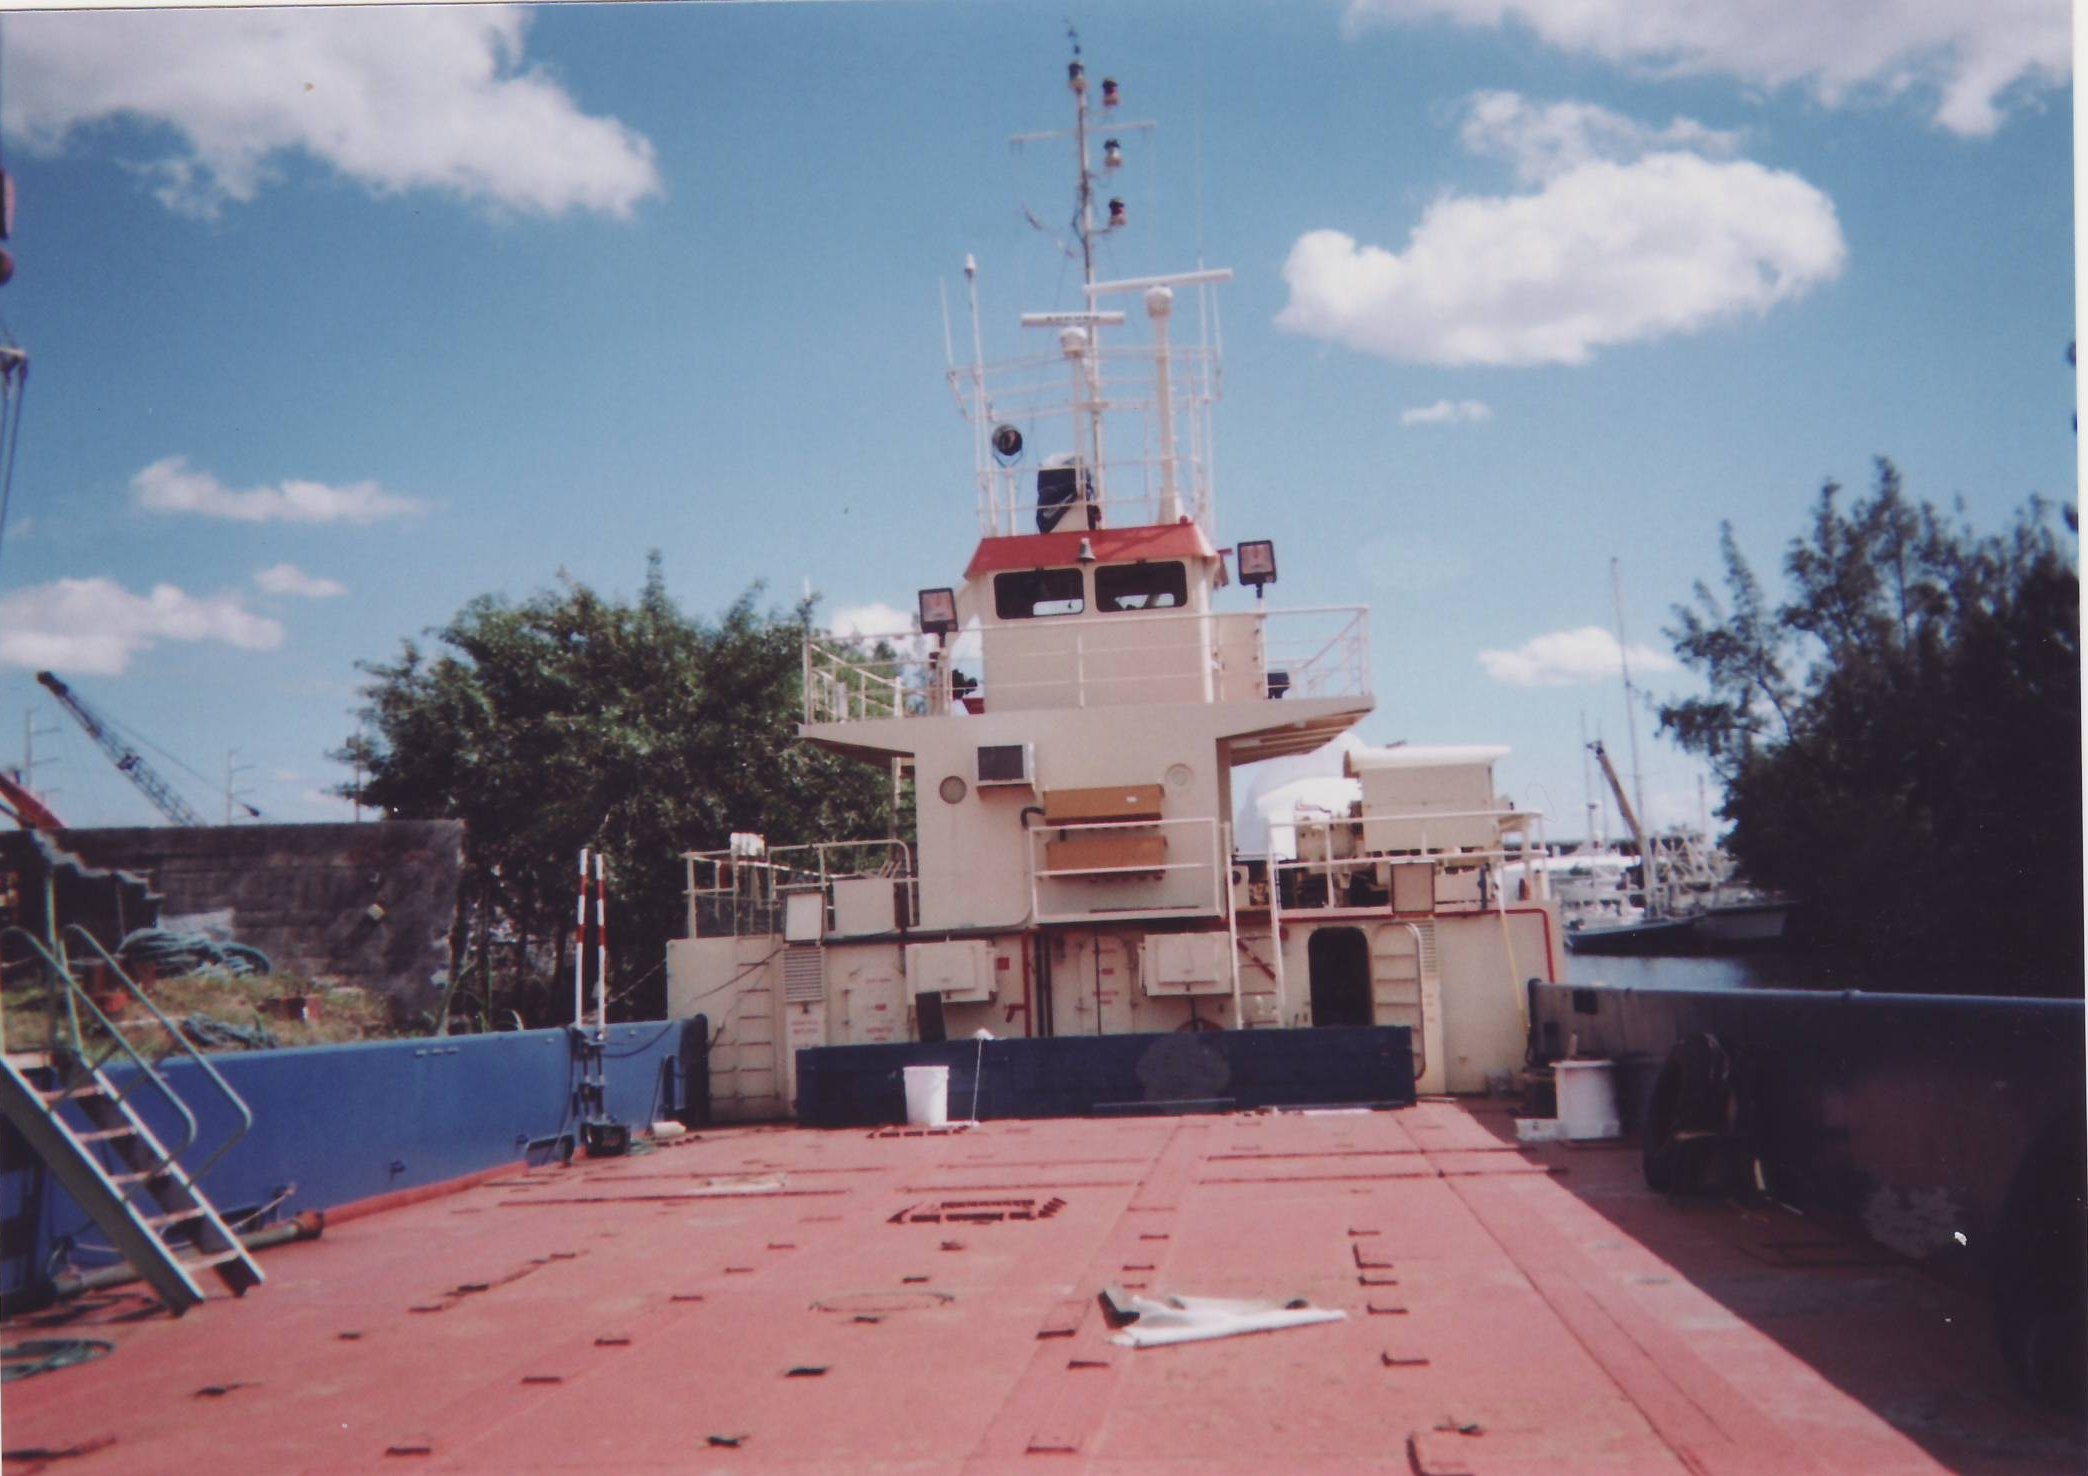 Custom LCM Landing Craft